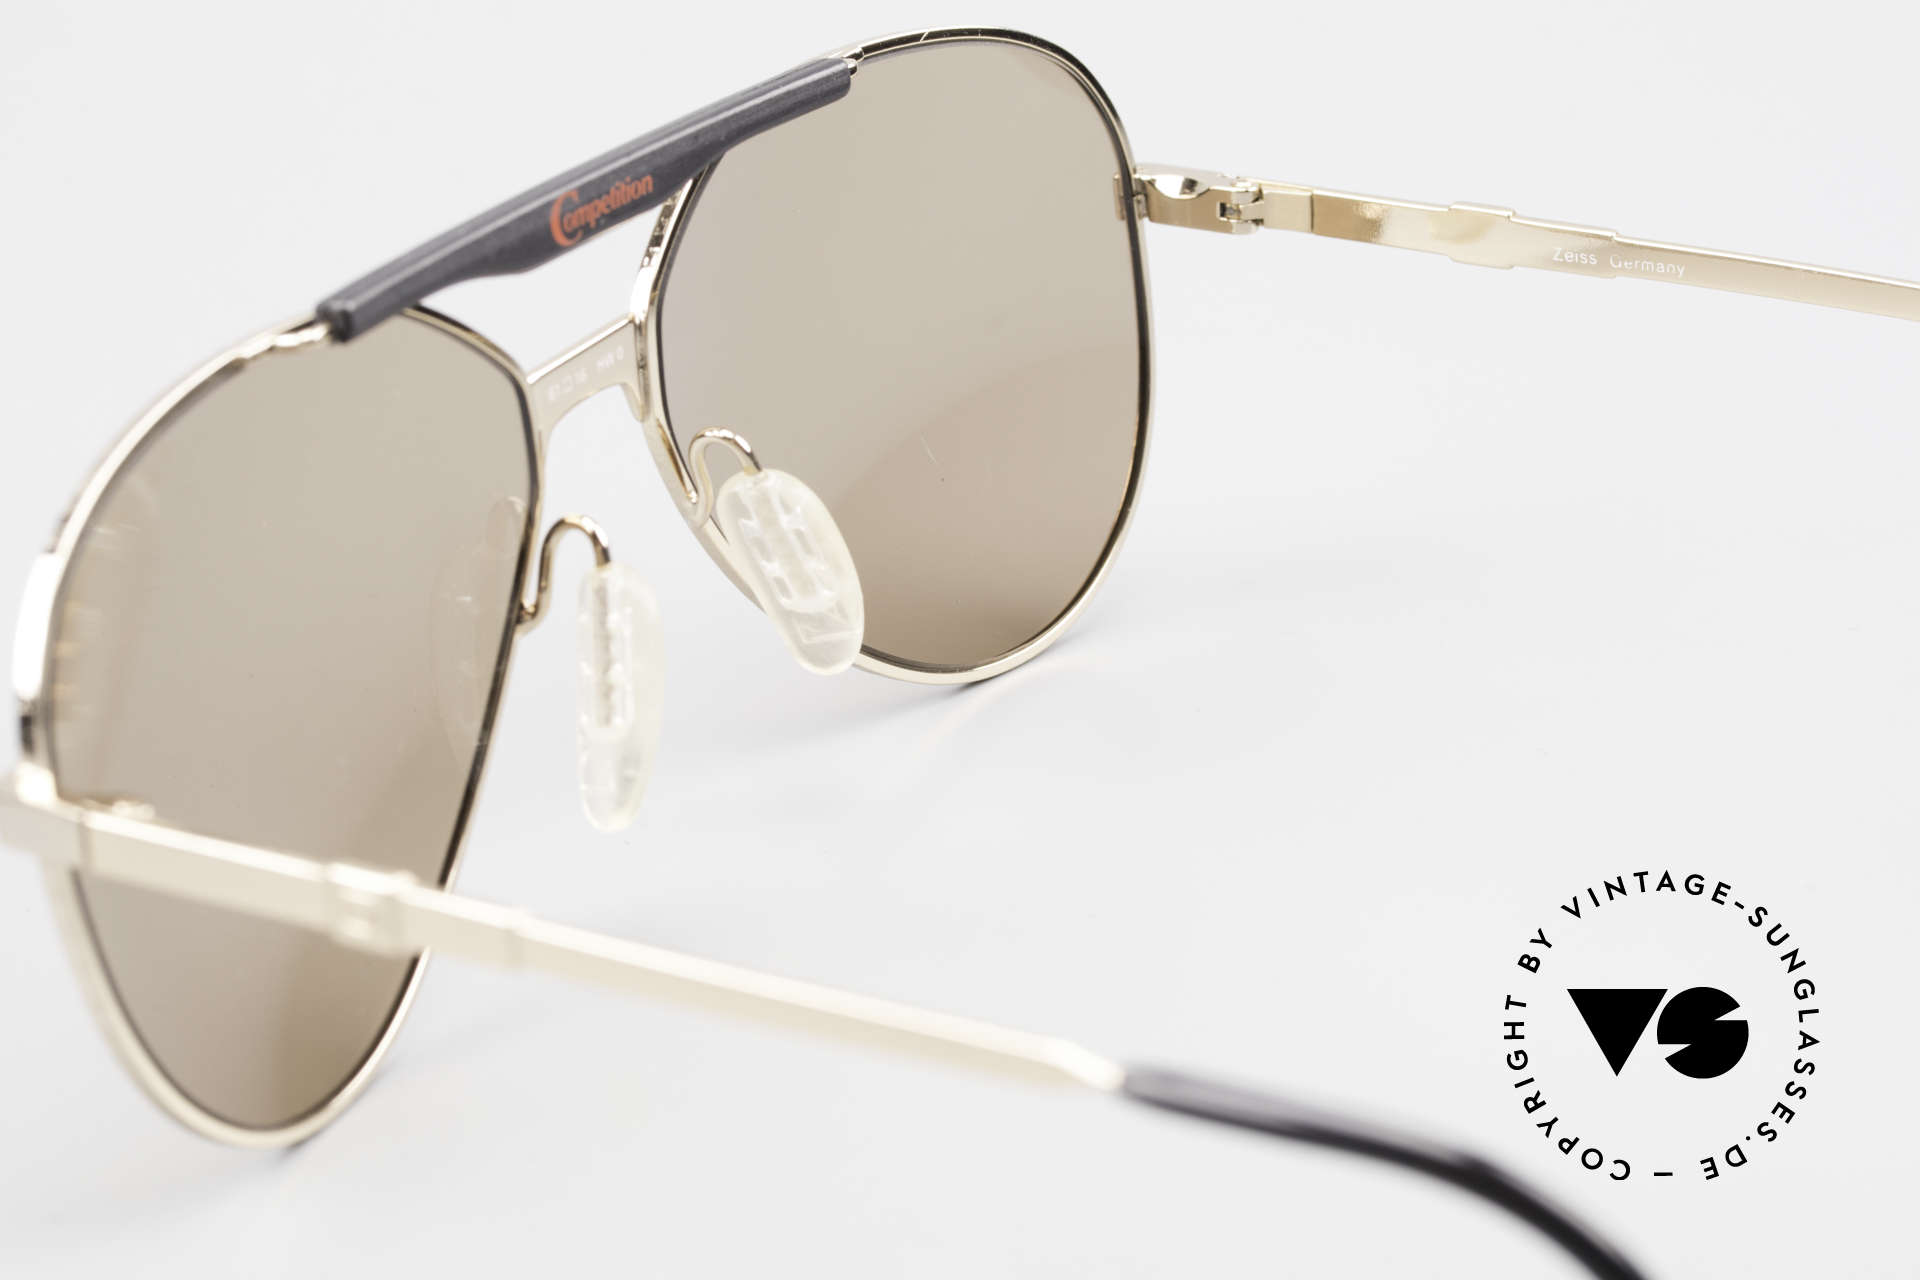 Zeiss 9931 Premium Vintage Sunglasses, Size: large, Made for Men